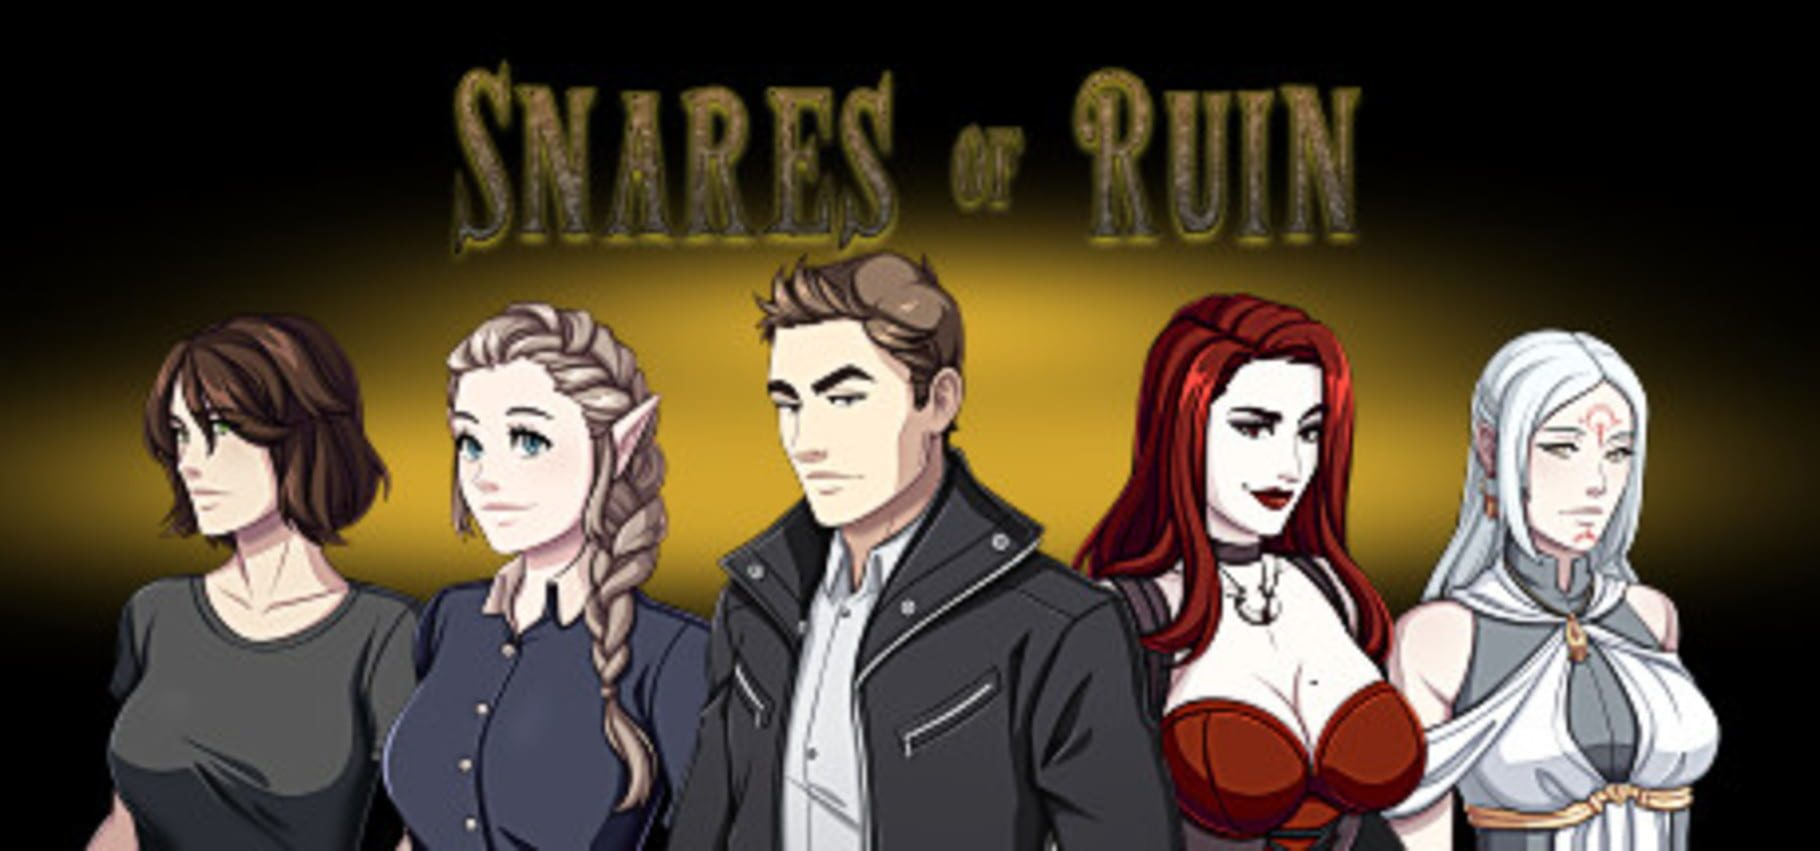 buy Snares of Ruin cd key for all platform